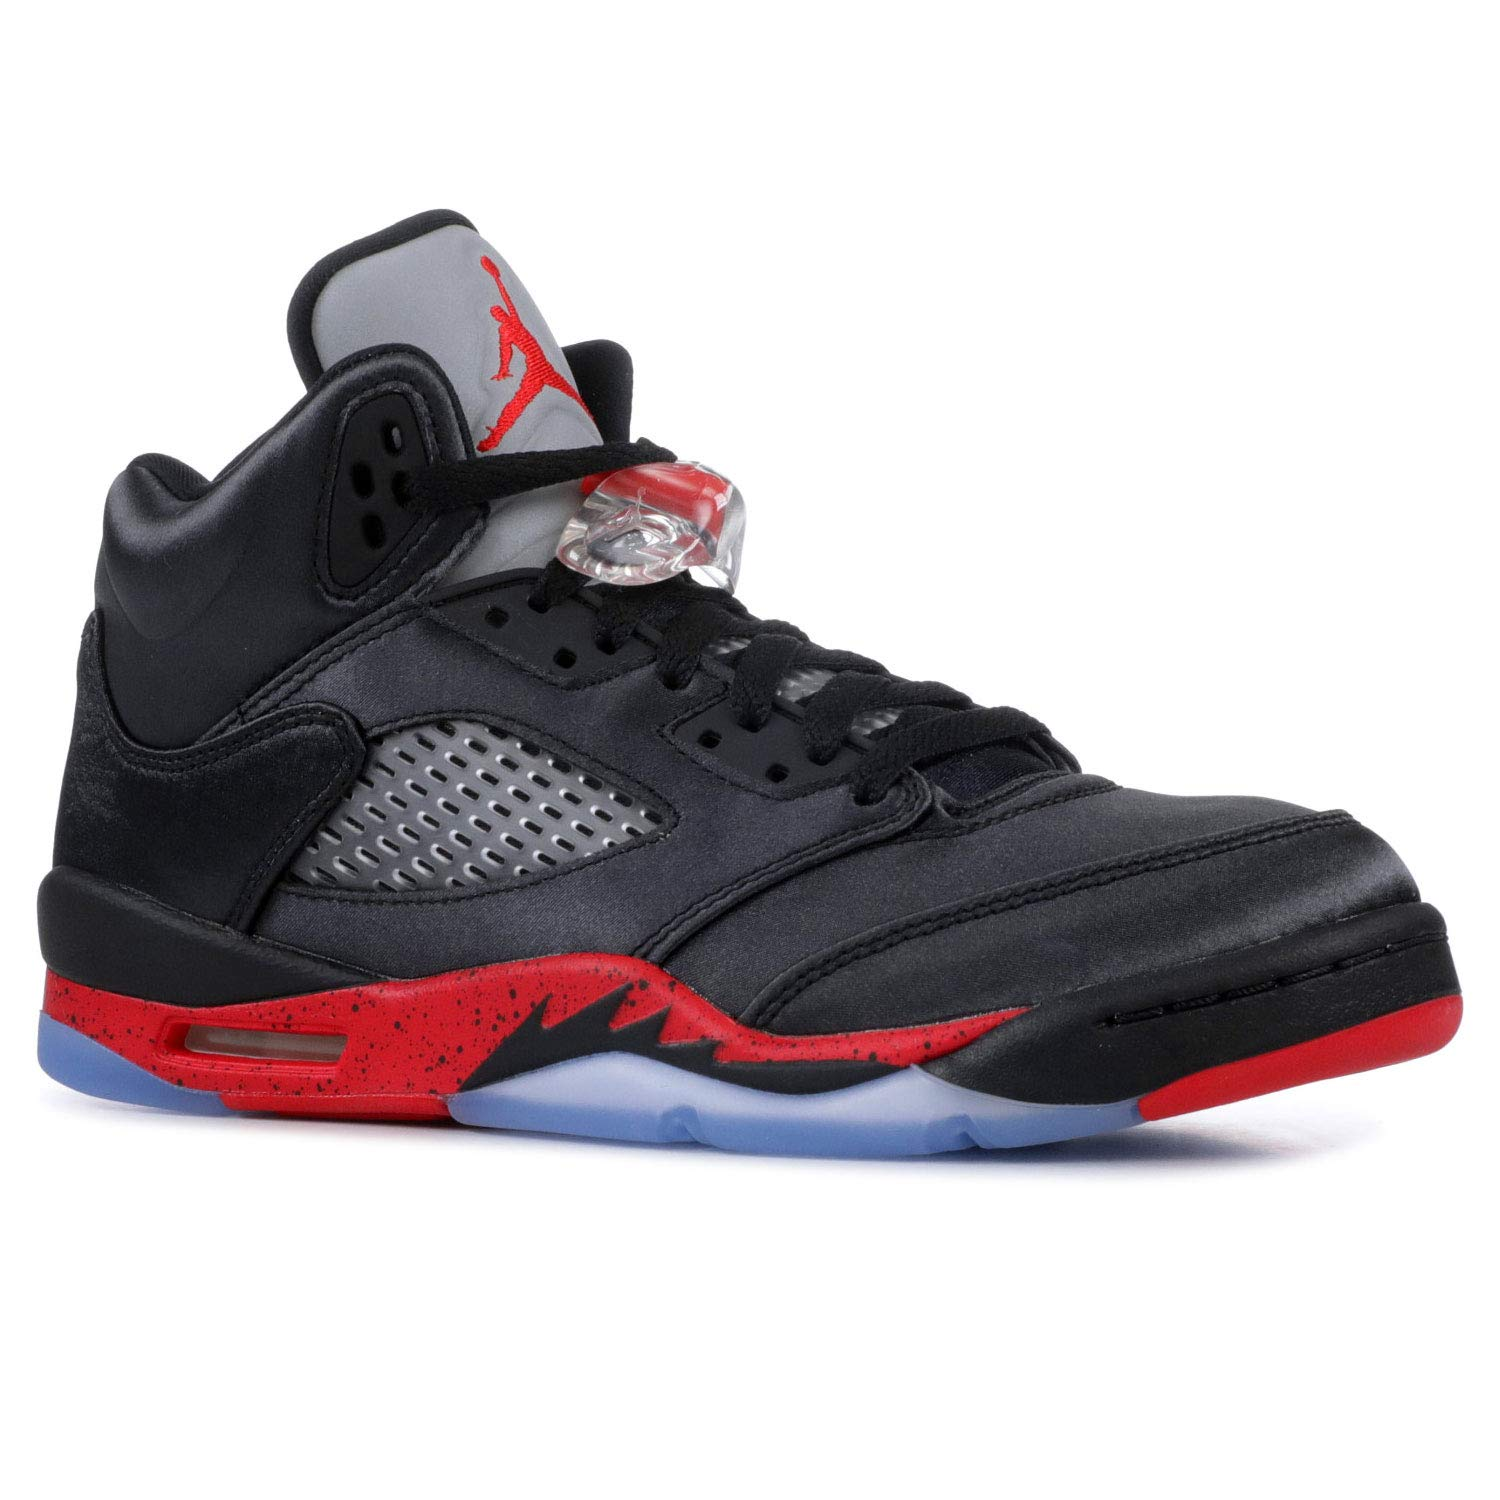 0dd9c327563a Amazon.com | Nike Air Jordan 5 Retro Grade School Satin Black/University Red  440888-006 (Size: 3.5Y) | Fashion Sneakers